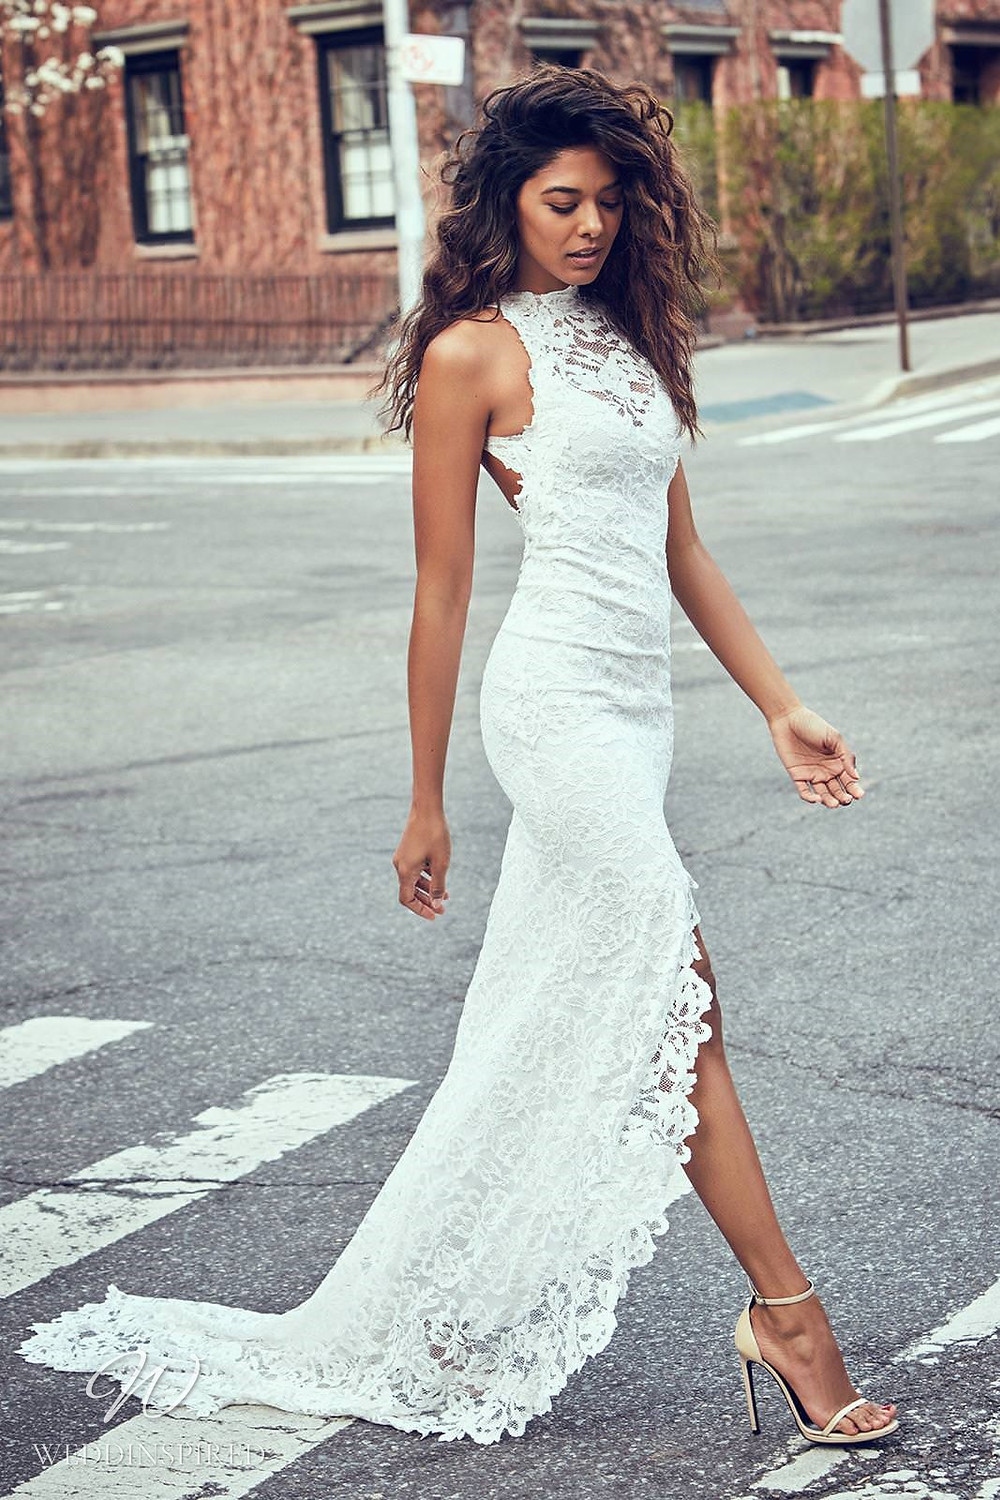 A Grace Loves Lace mermaid lace wedding dress with a high slit and a halterneck